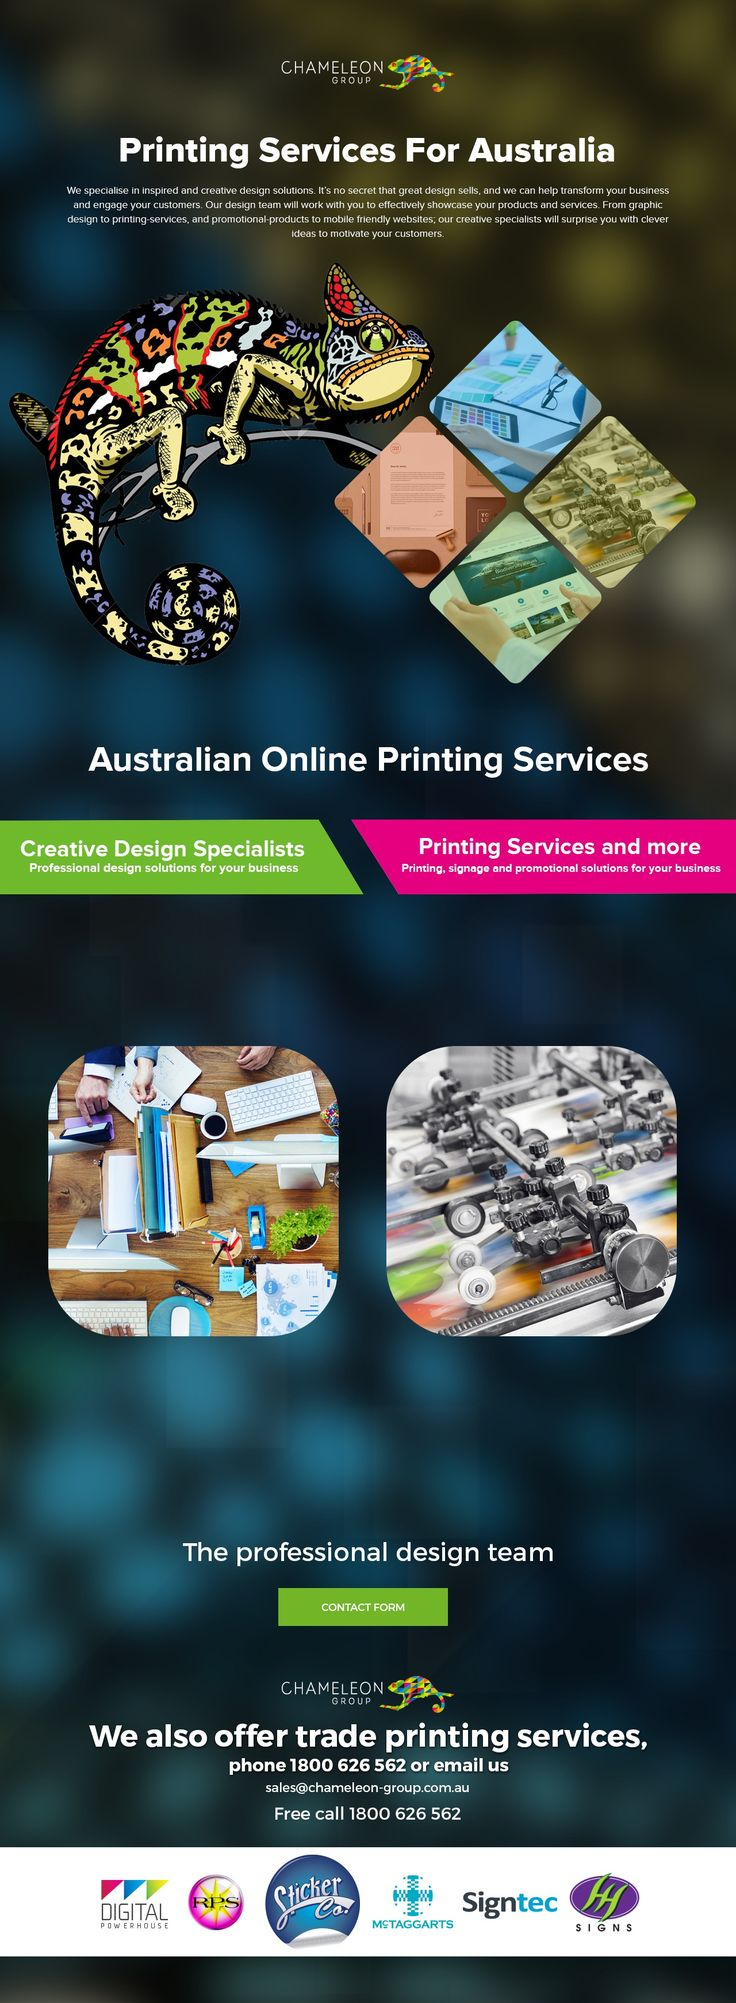 Australian Online Printing Services